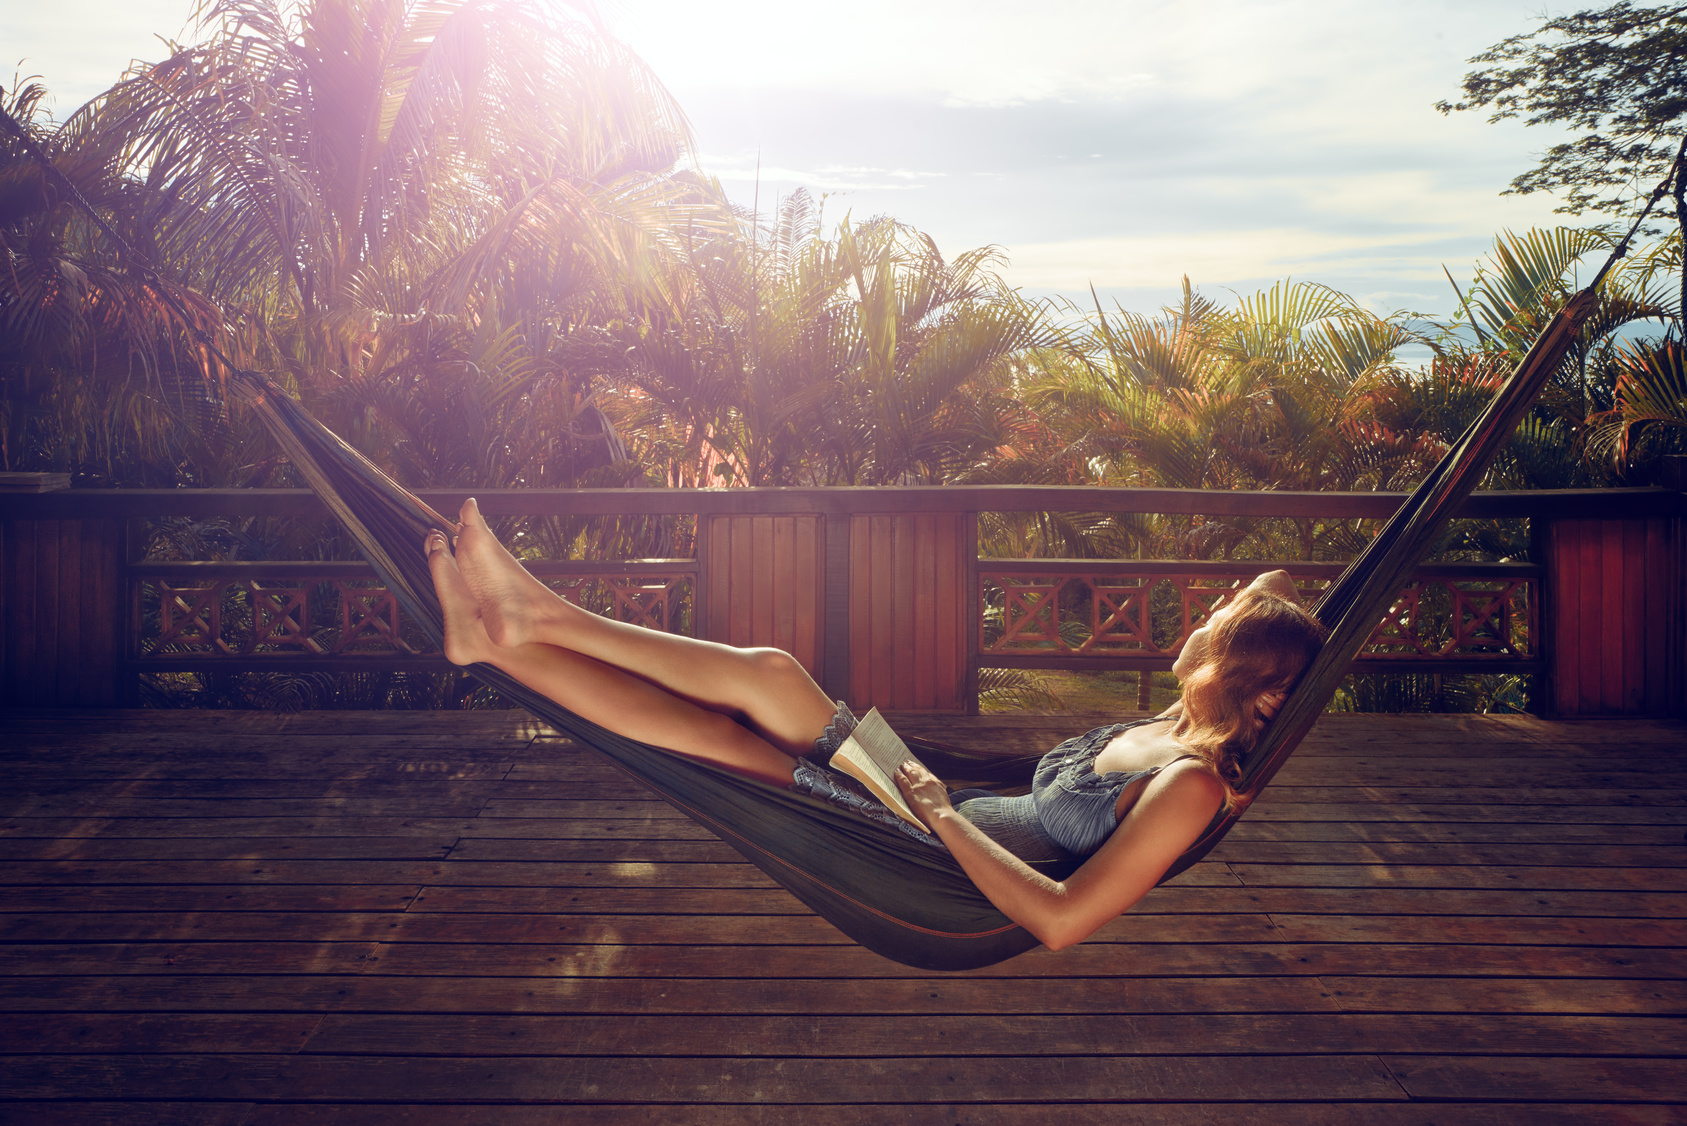 woman with book in her hands is resting in ahammock on the terrace against the background of asunset in the jungle during avacation.